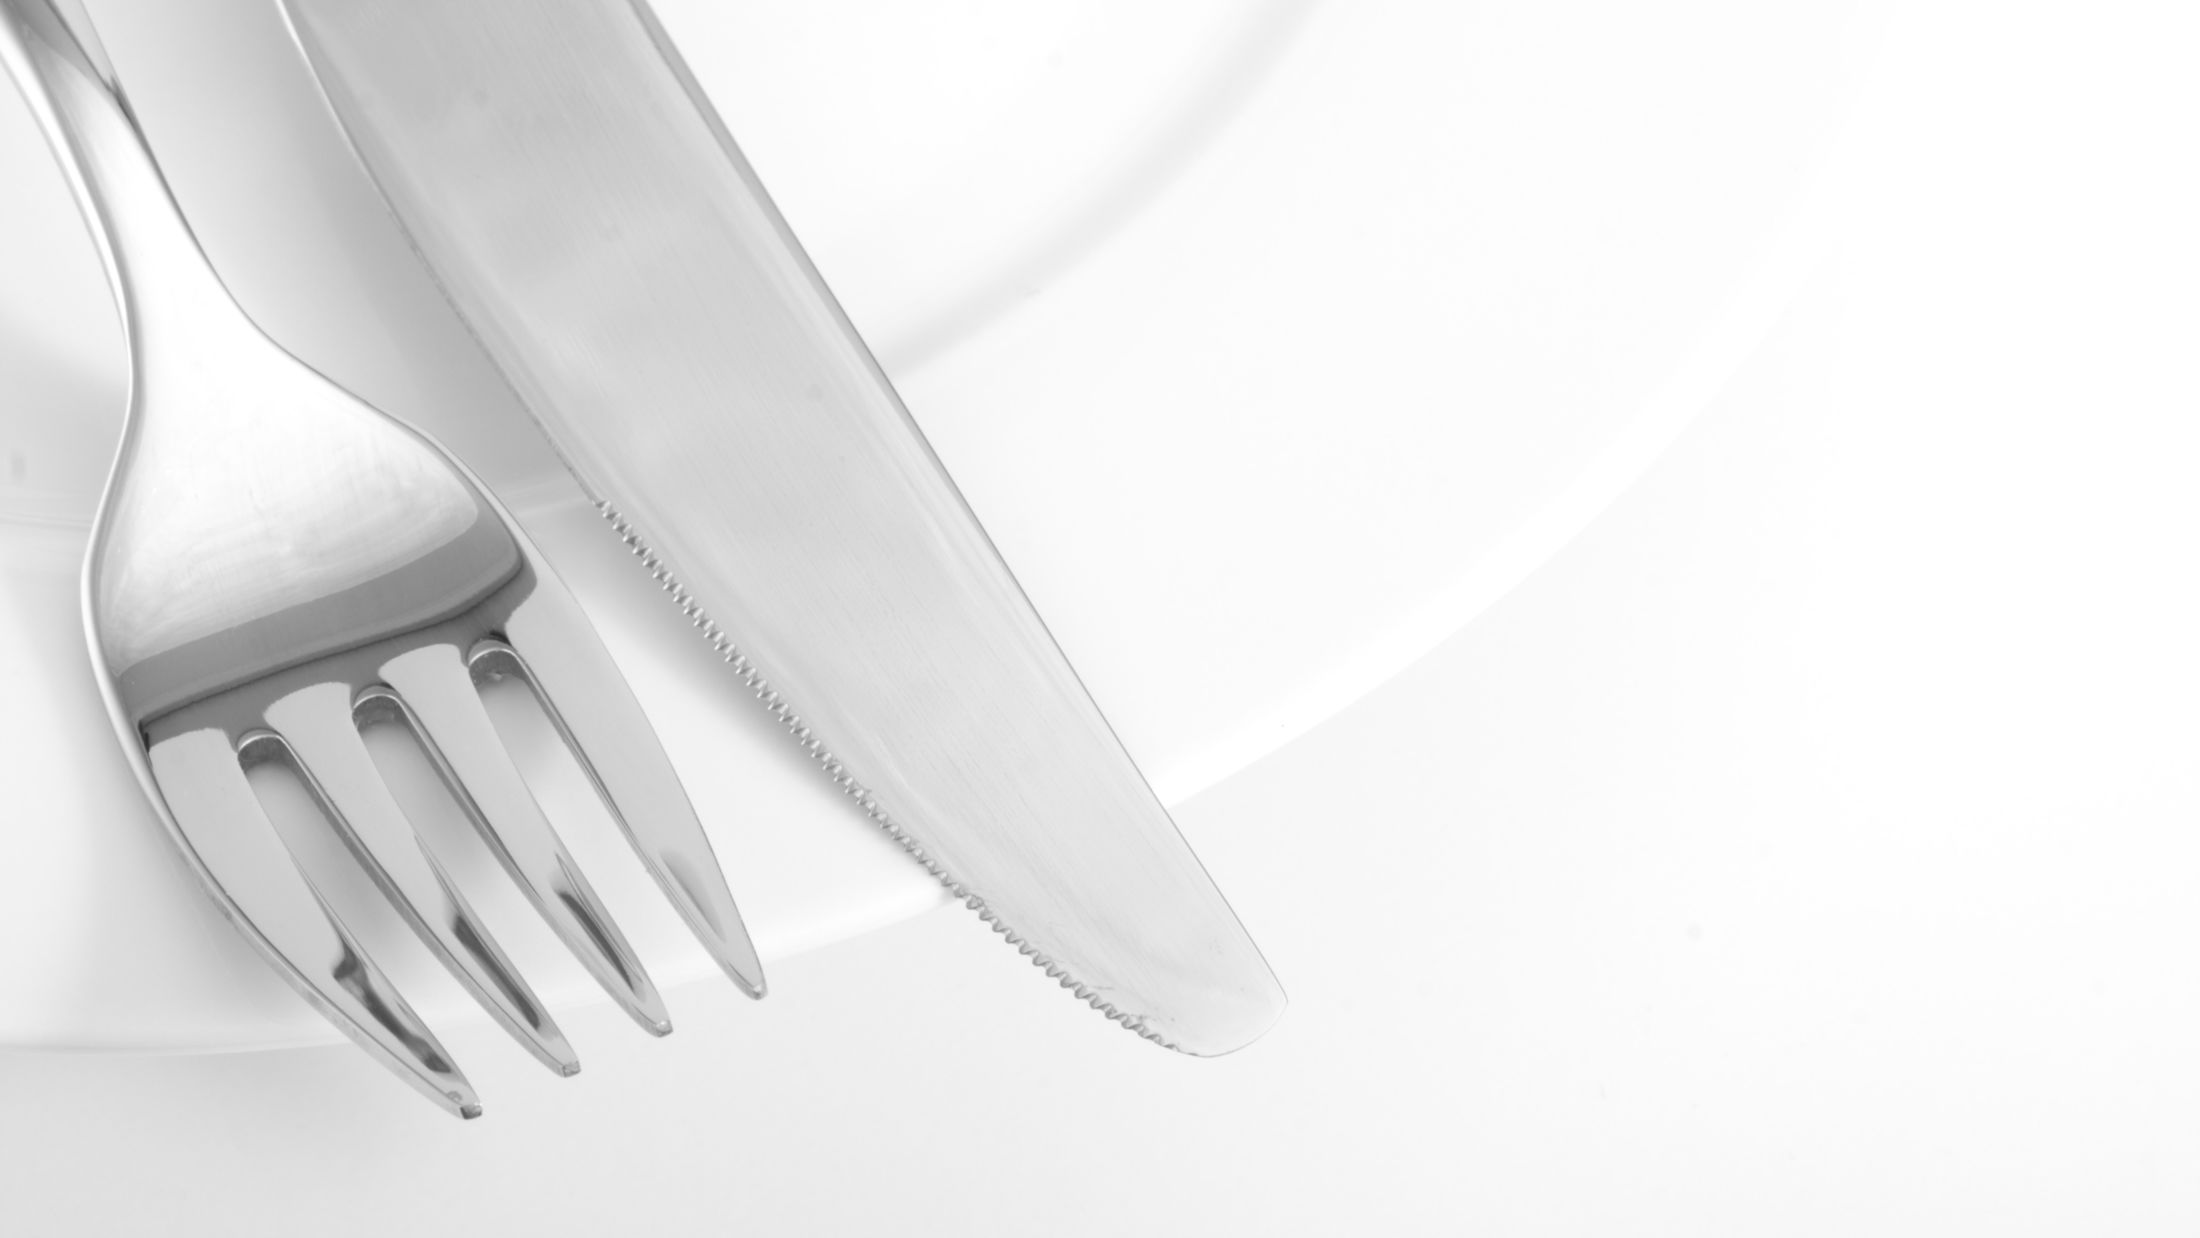 cutlery on a plate; Shutterstock ID 20269036; PO: Sovereign